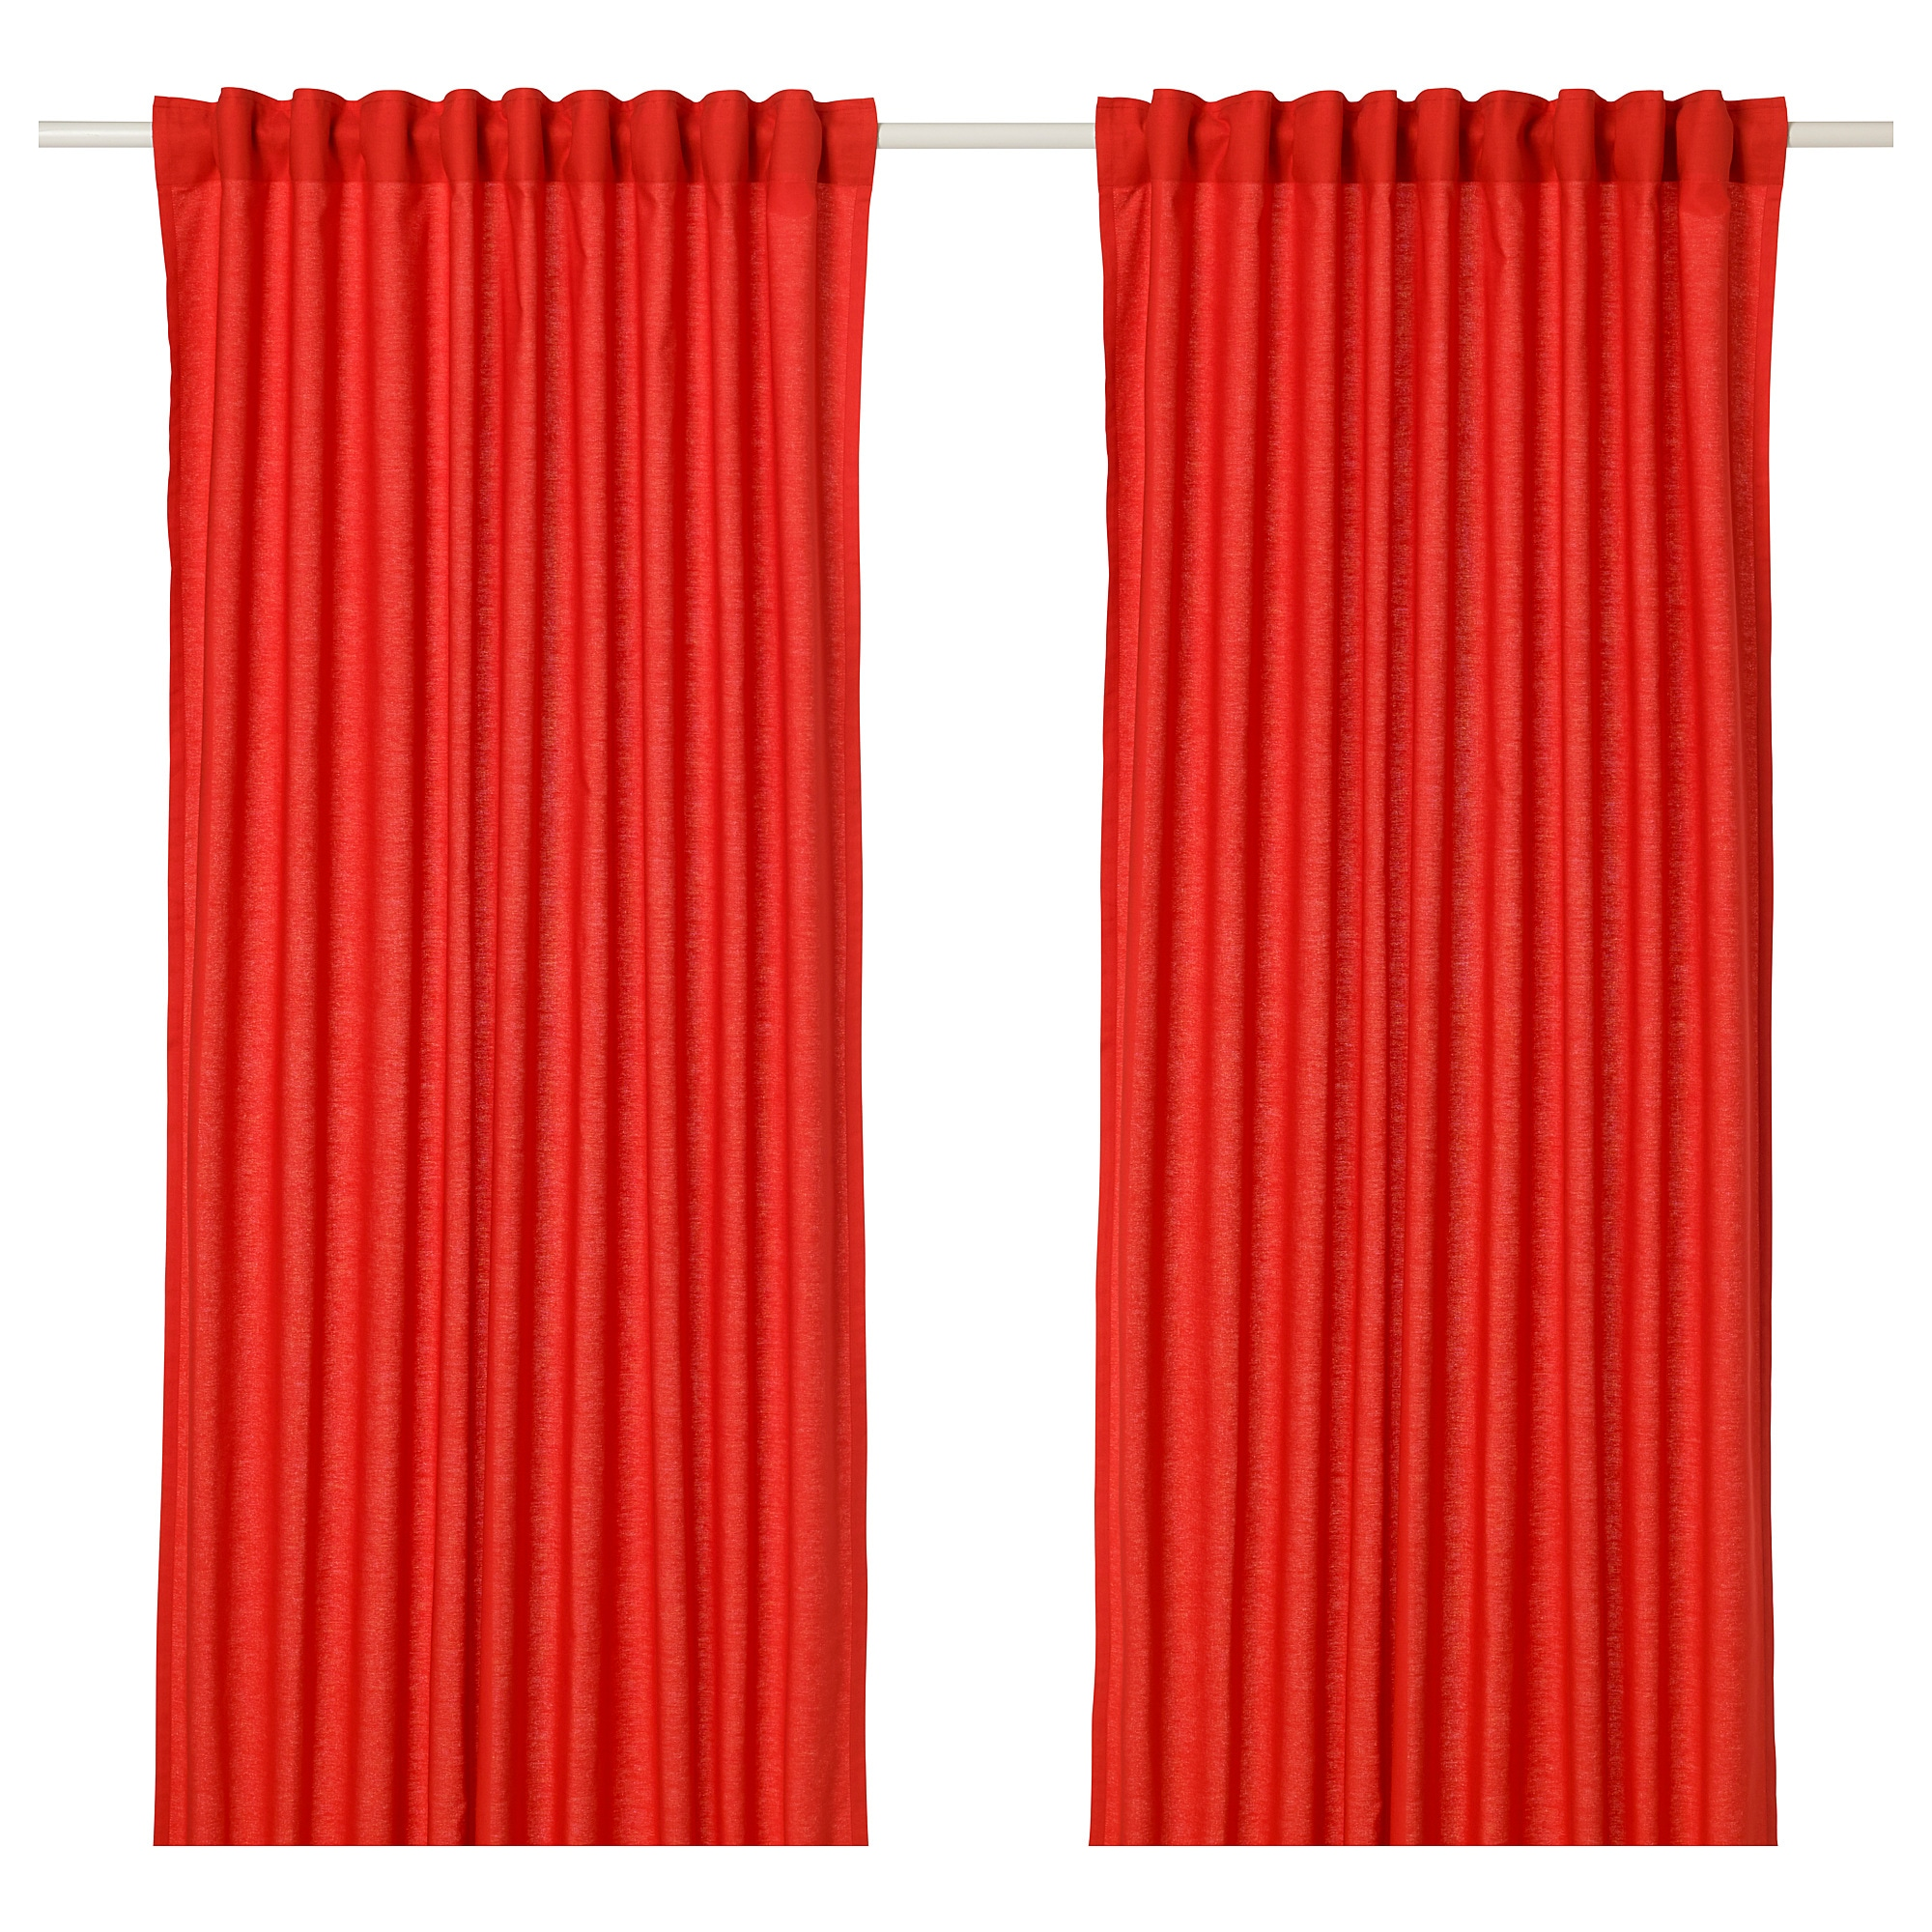 annalouisa curtains 1 pair ikea